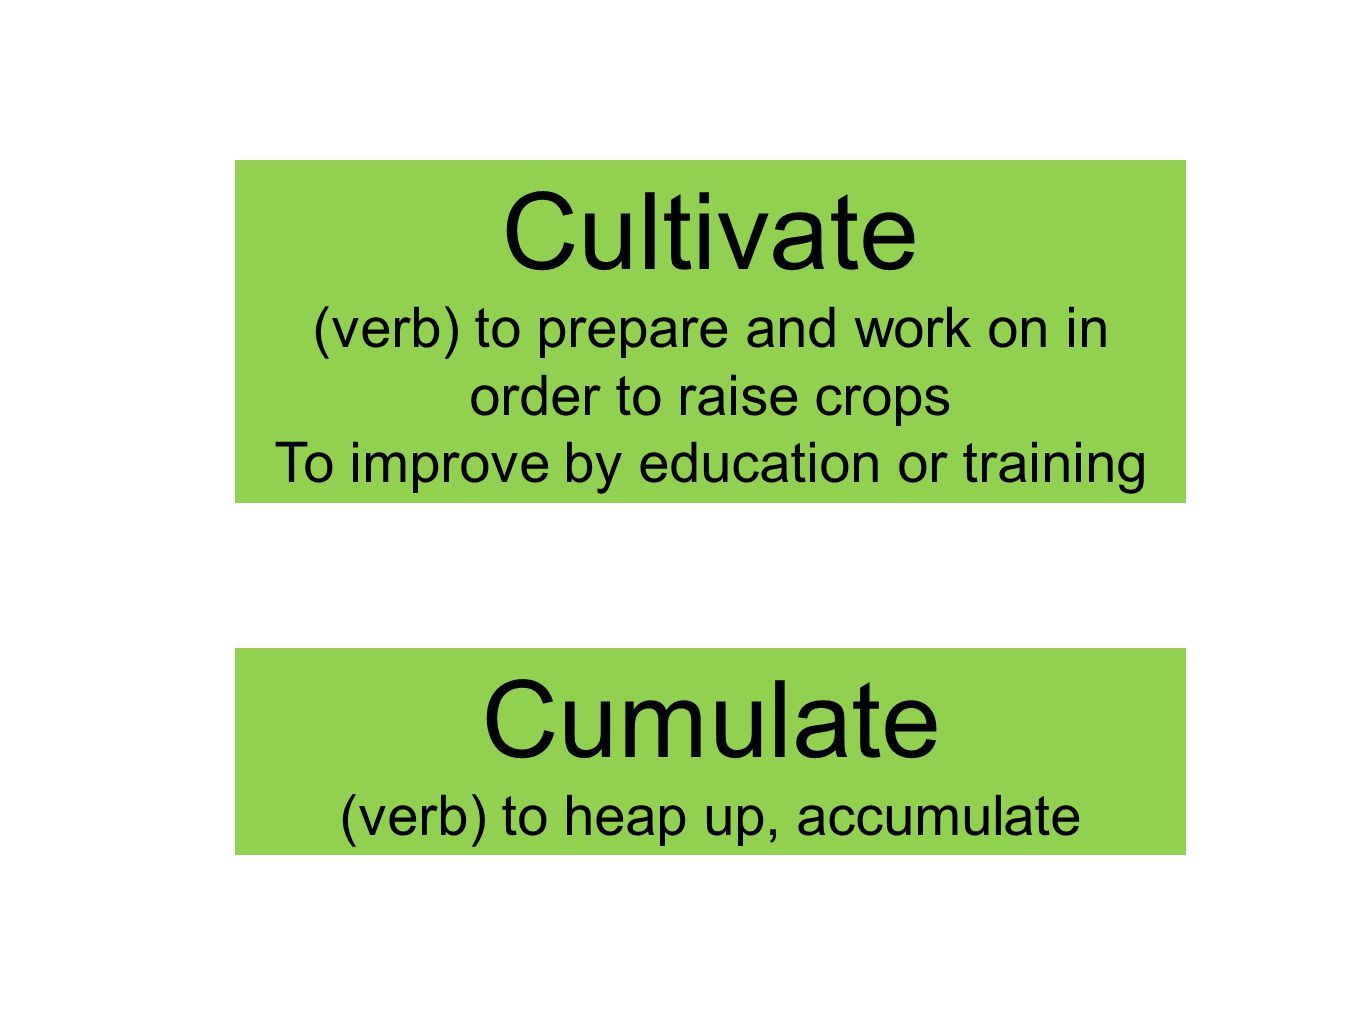 Cultivate (verb) to prepare and work on in order to raise crops To improve by education or training Cumulate (verb) to heap up, accumulate